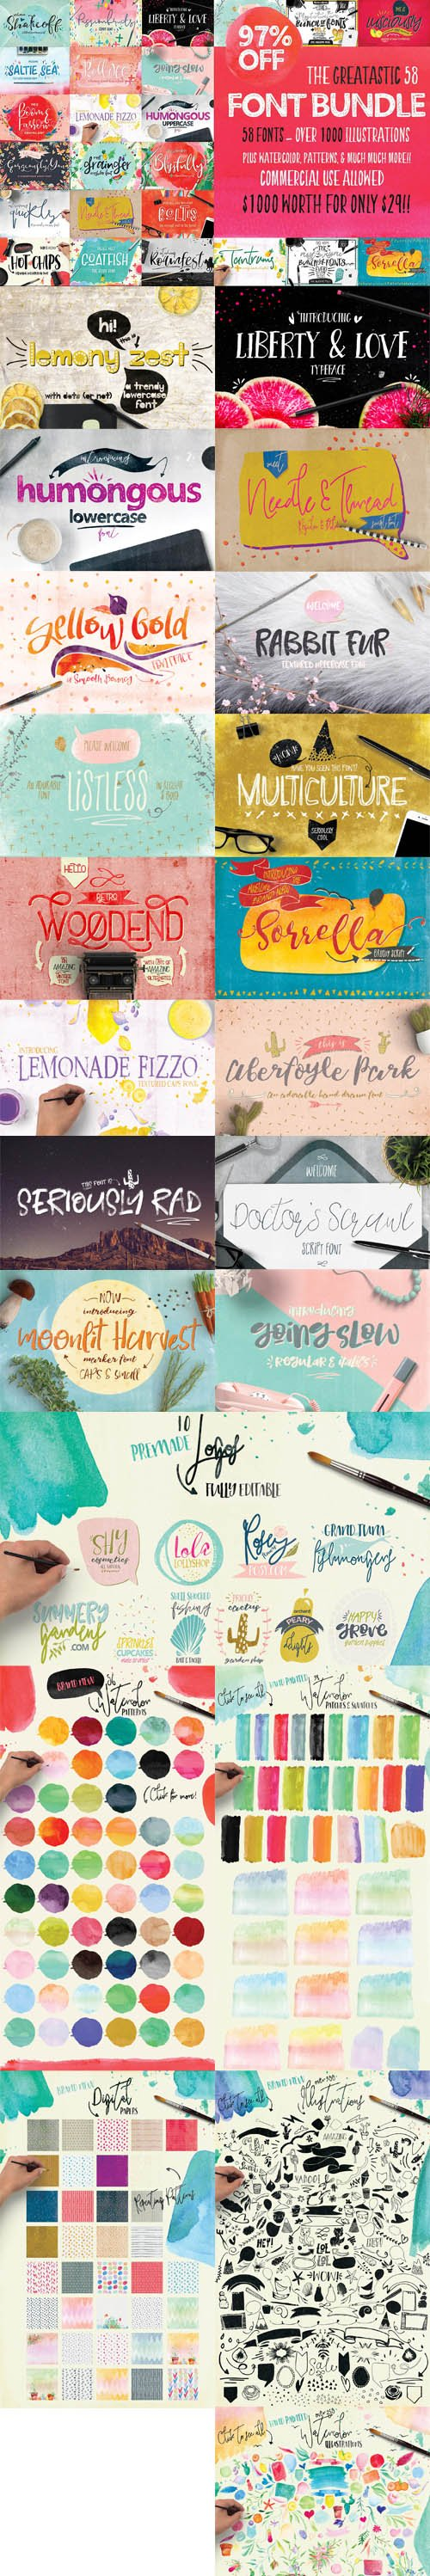 Creativeqube Design Studio - The Greatastic 58 Font Bundle - Over 1000 Illustrations + Patterns